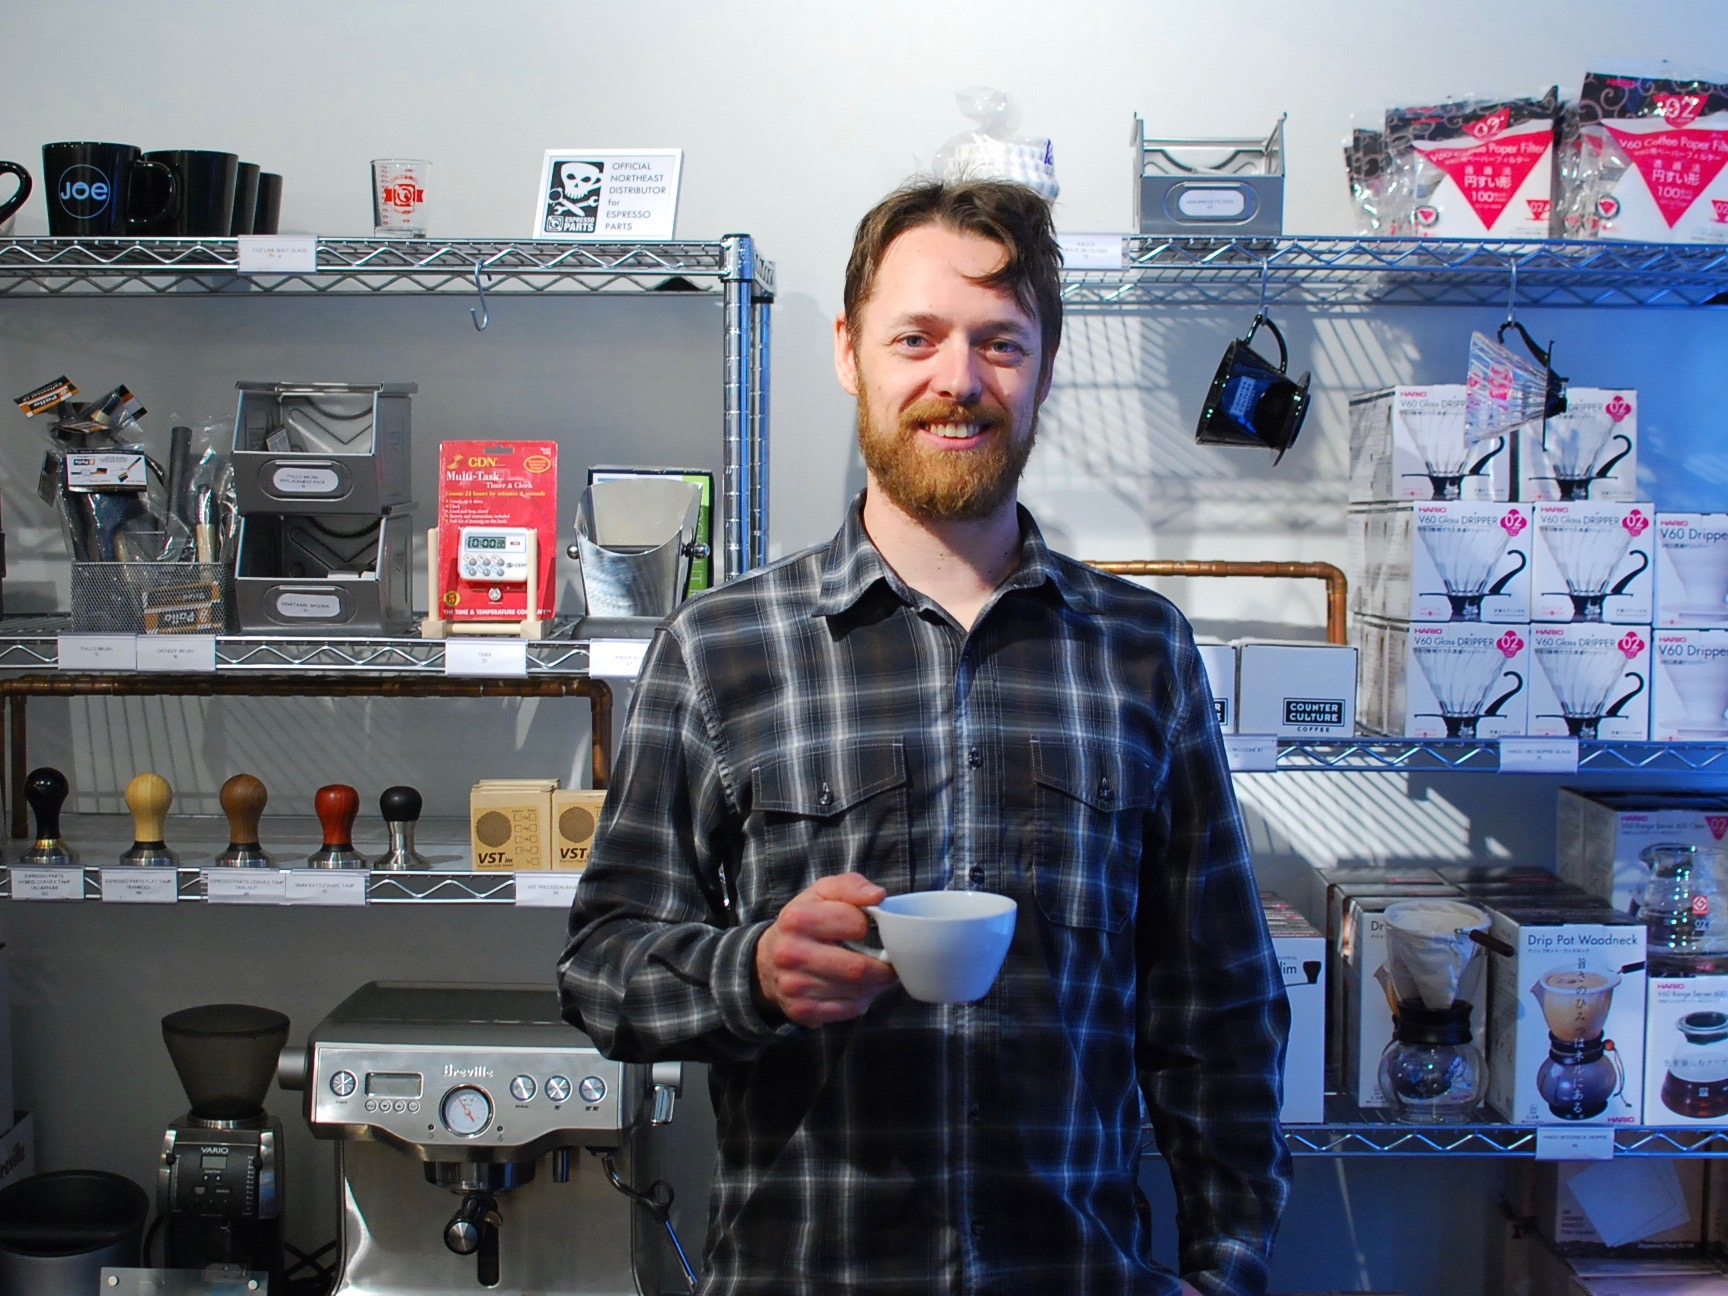 Interview: coffee pro Ed Kaufmann (Joe the Art of Coffee)